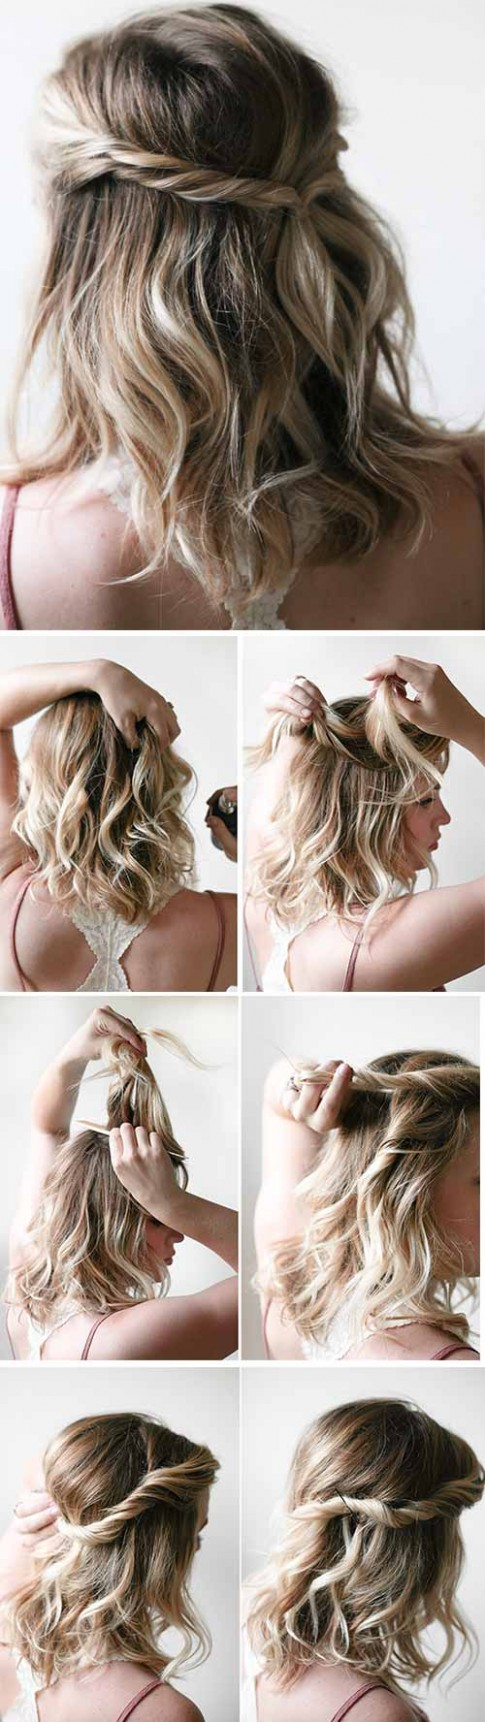 9 Incredible DIY Short Hairstyles A Step By Step Guide Hairstyles For People With Short Hair